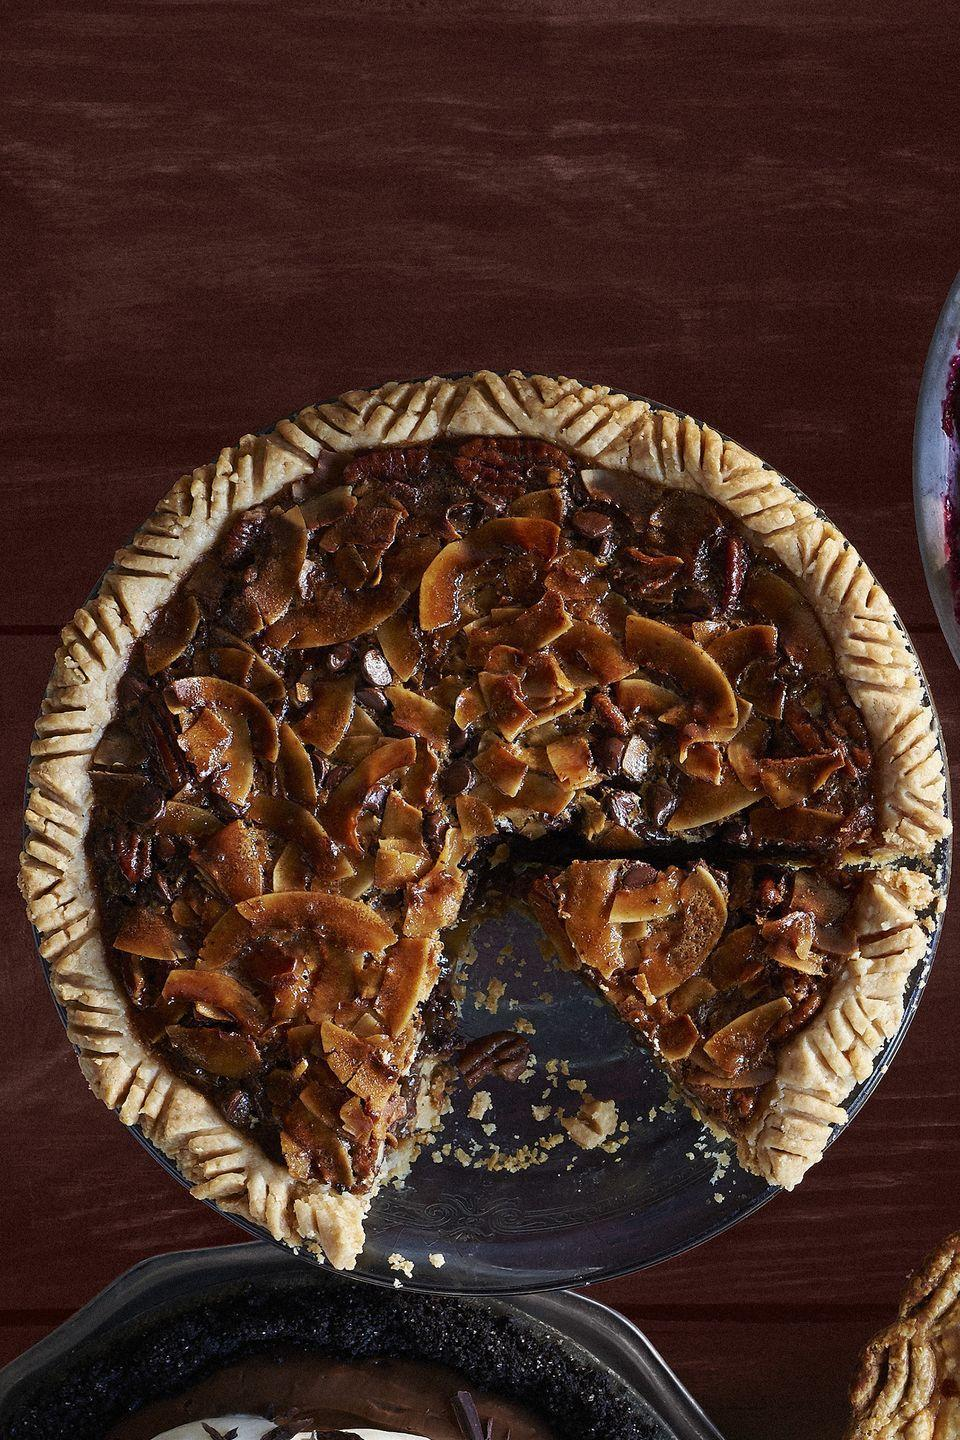 "<p>Sure, pecan pie is great on its own, but the addition of coconut and chocolate adds layers of delicious flavor.</p><p><strong><a href=""https://www.countryliving.com/food-drinks/recipes/a36551/chocolate-coconut-pecan-pie/"" rel=""nofollow noopener"" target=""_blank"" data-ylk=""slk:Get the recipe."" class=""link rapid-noclick-resp"">Get the recipe.</a></strong></p>"